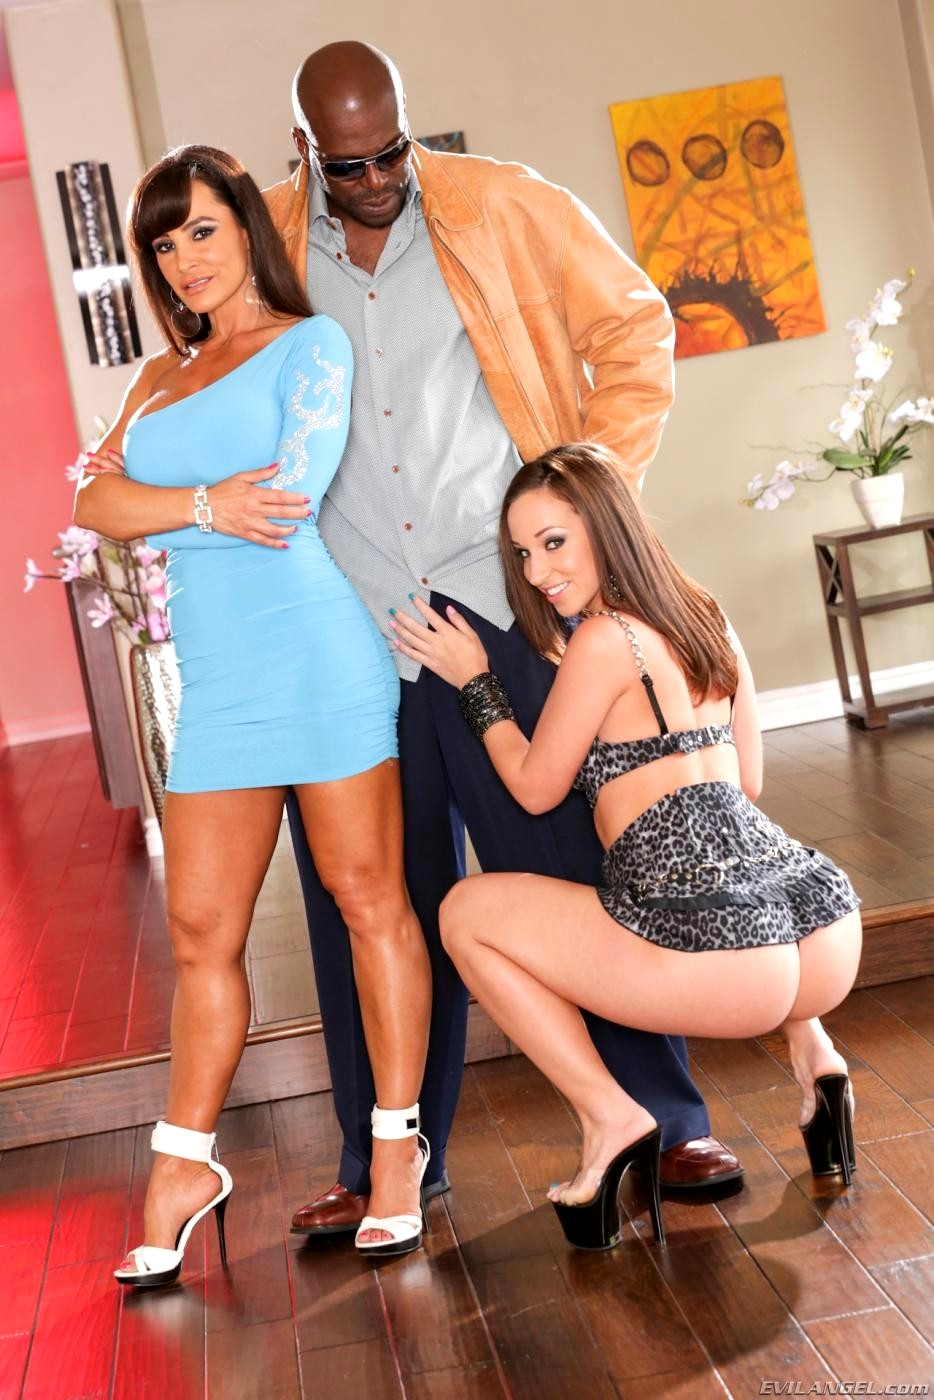 Thanks for Lisa ann and jada stevens evil angel remarkable